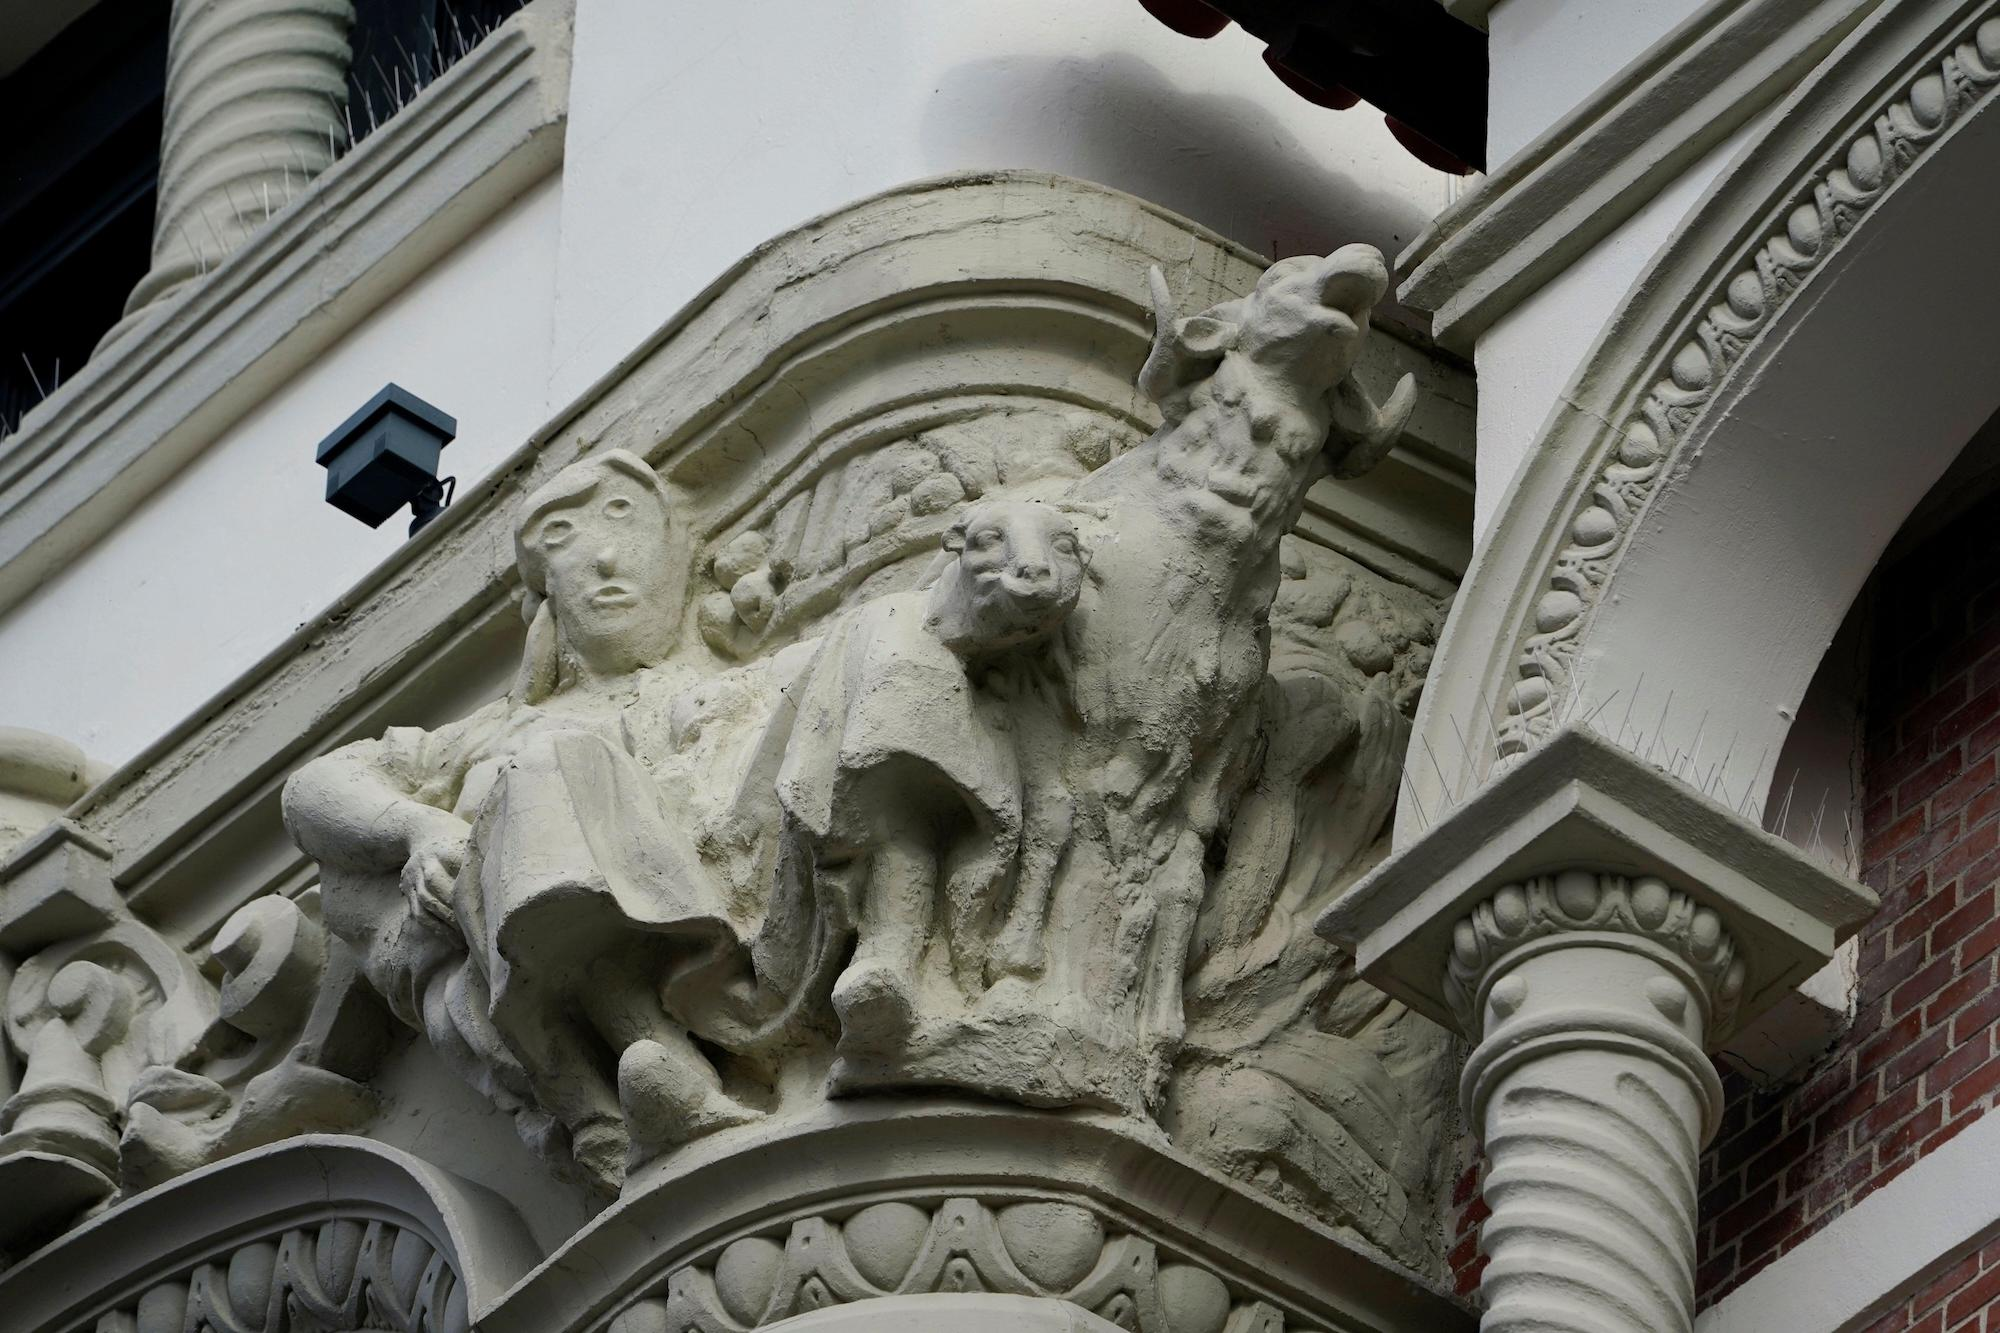 The botched restoration of a shepherdess figure in seen on a building, amid the coronavirus disease (COVID-19) outbreak, in Palencia, Spain November 14, 2020. REUTERS/Vincent West